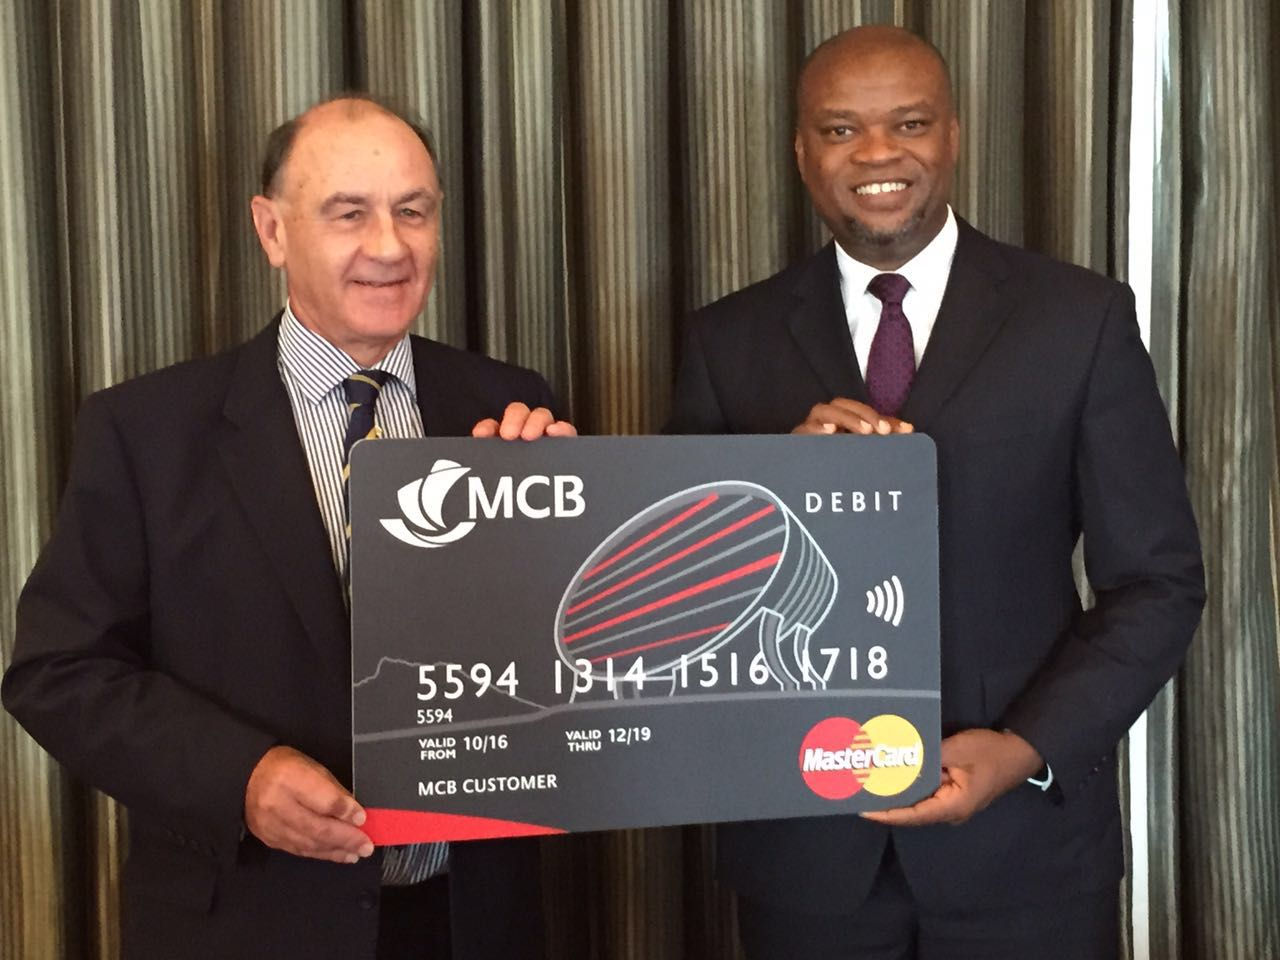 MCB Group Chief Executive Antony Withers with Daniel Monehin, Division President for Sub Saharan Africa at Mastercard announce launch of contactless payment solution in Mauritius.